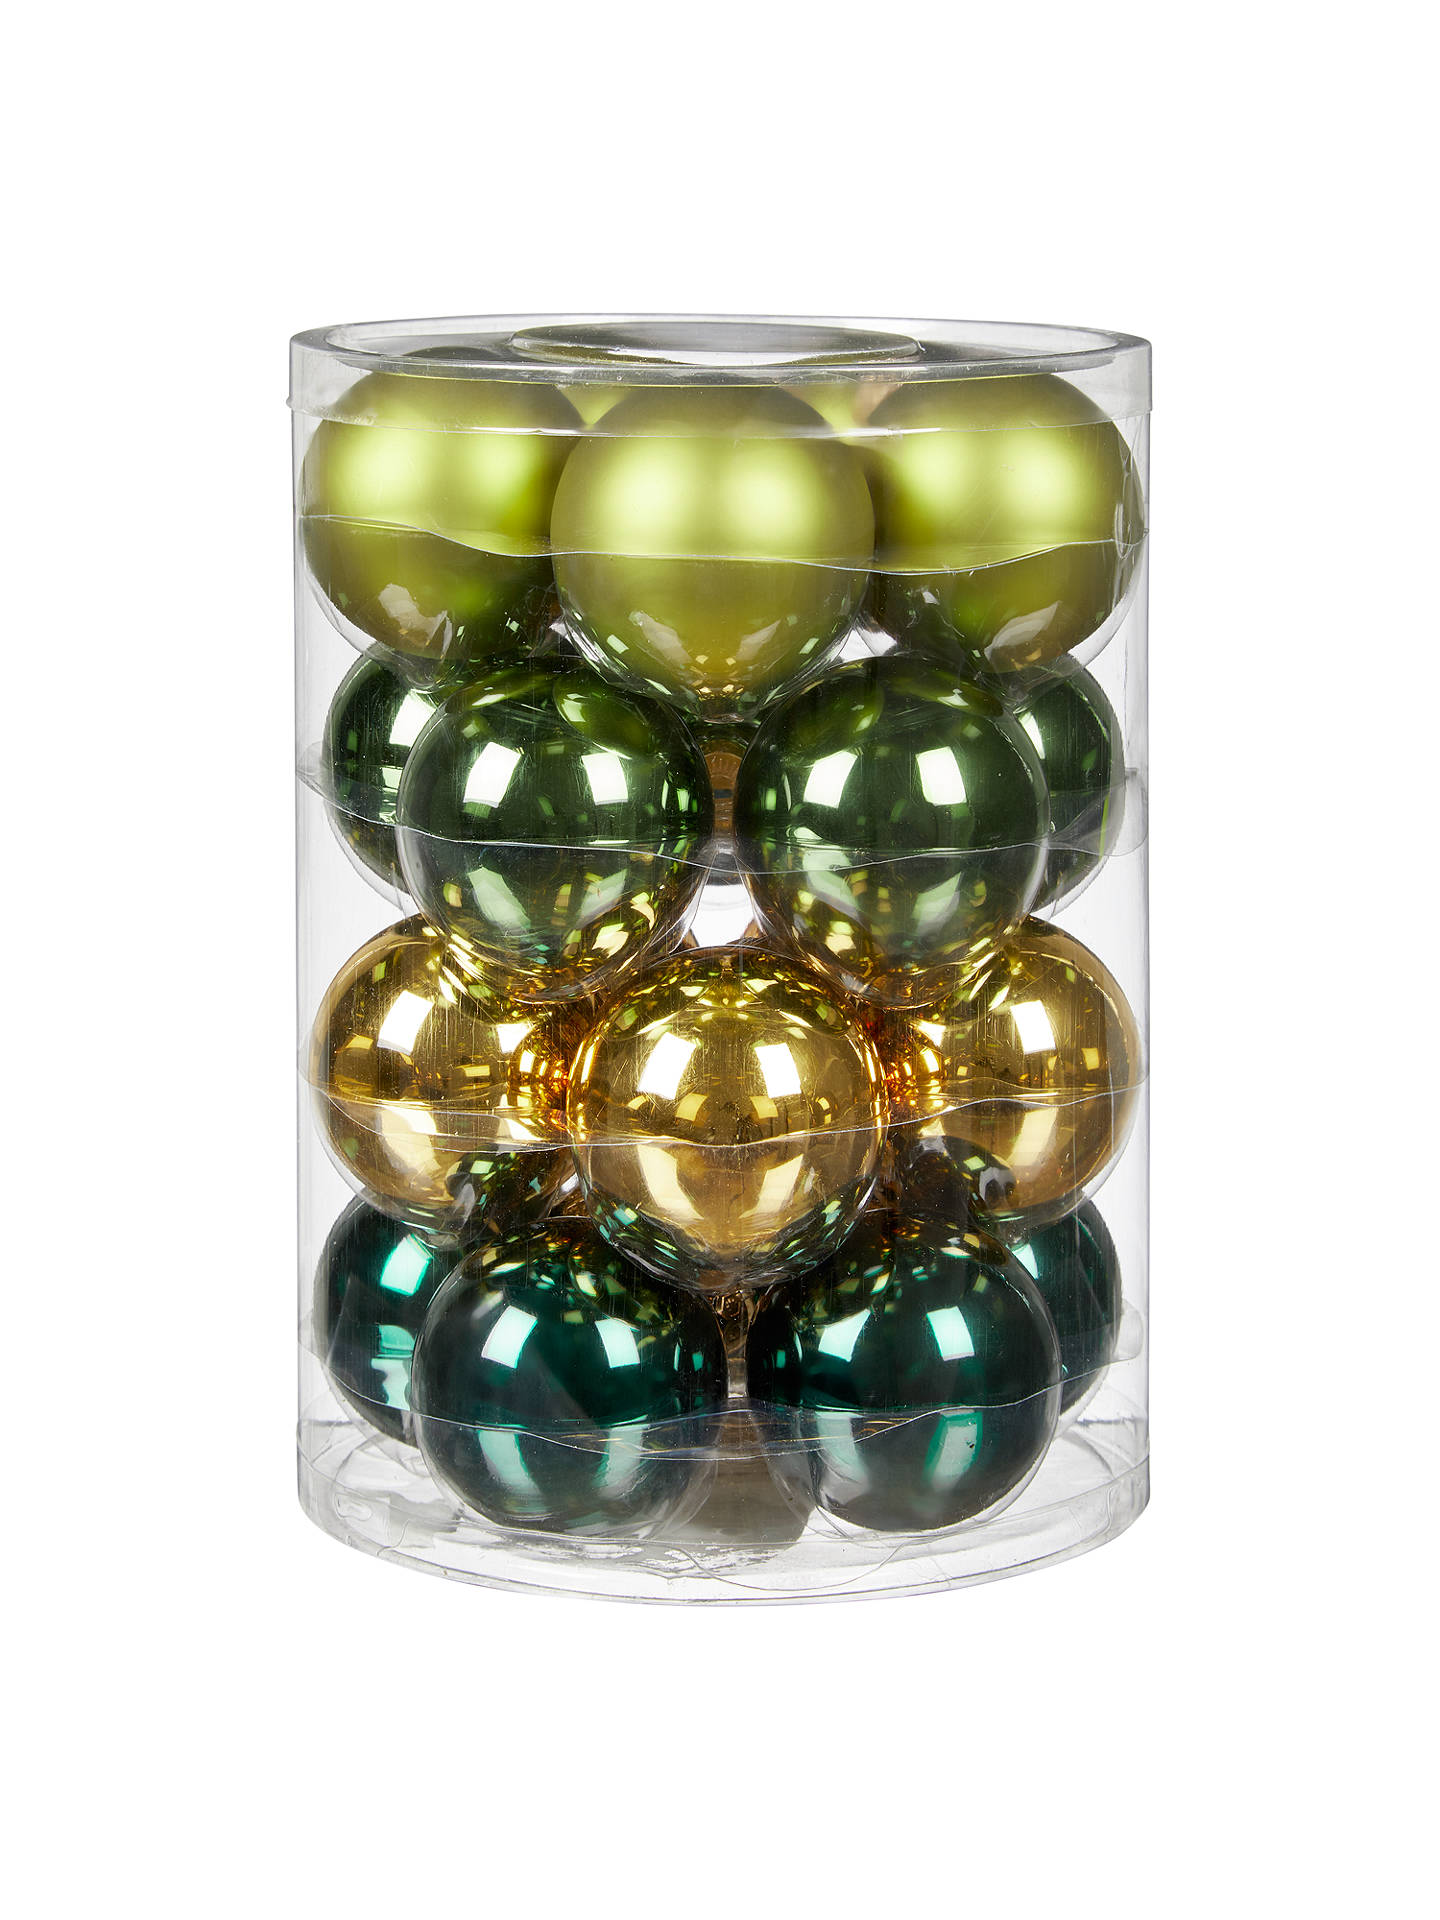 BuyJohn Lewis & Partners Emerald Glass Baubles, Tub of 20, Green/Multi Online at johnlewis.com